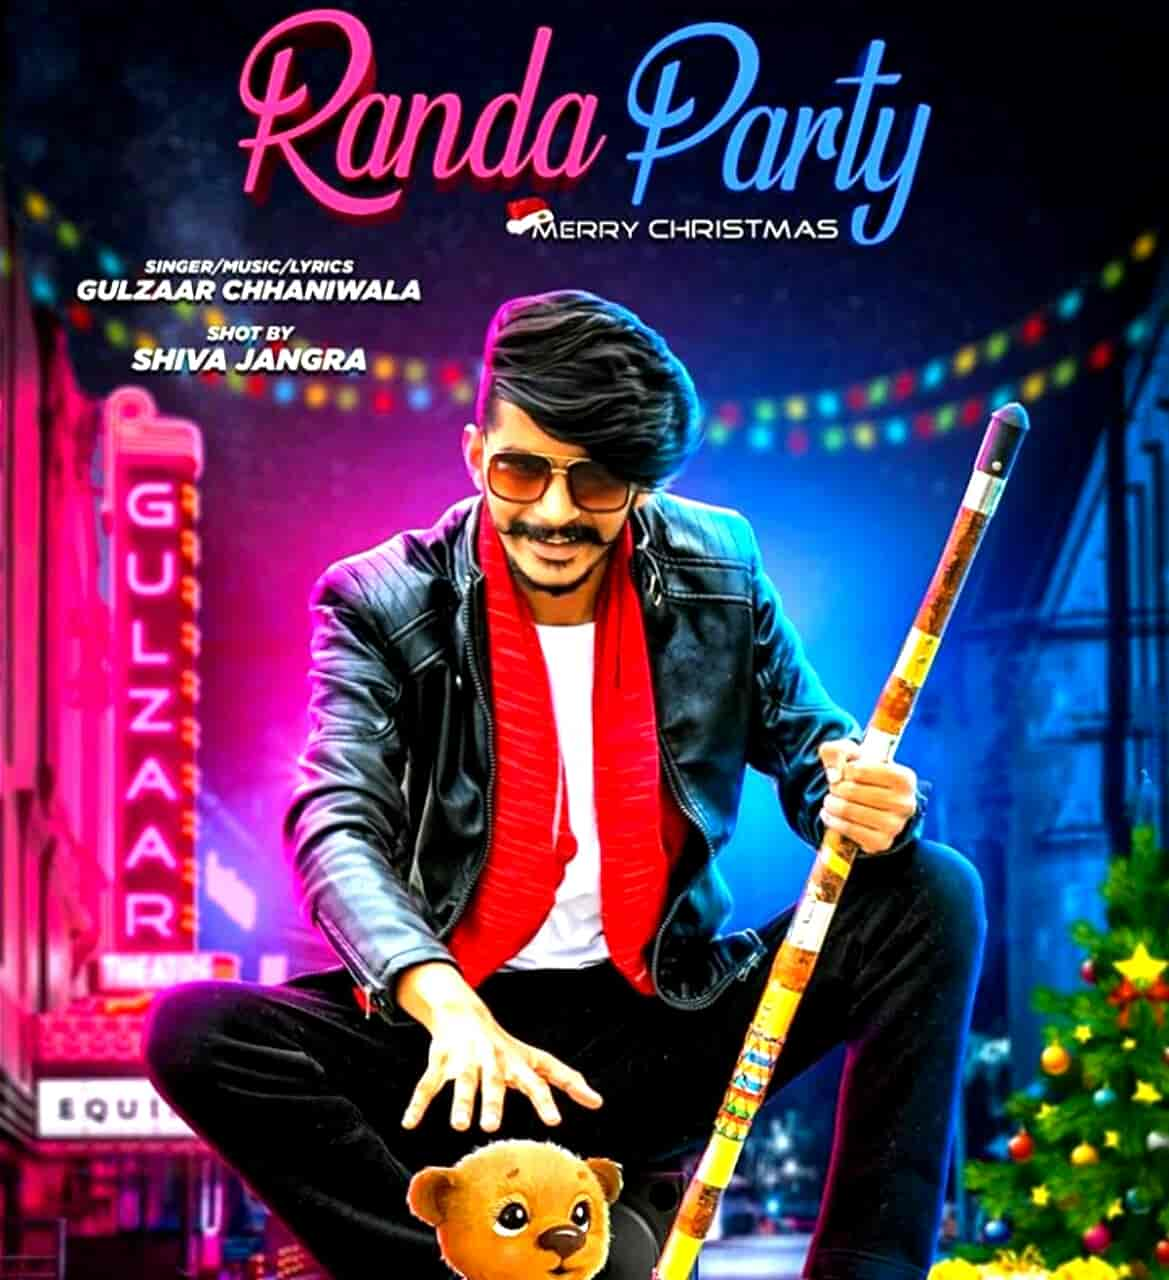 Randa Party Lyrics Images Gulzaar Chhaniwala